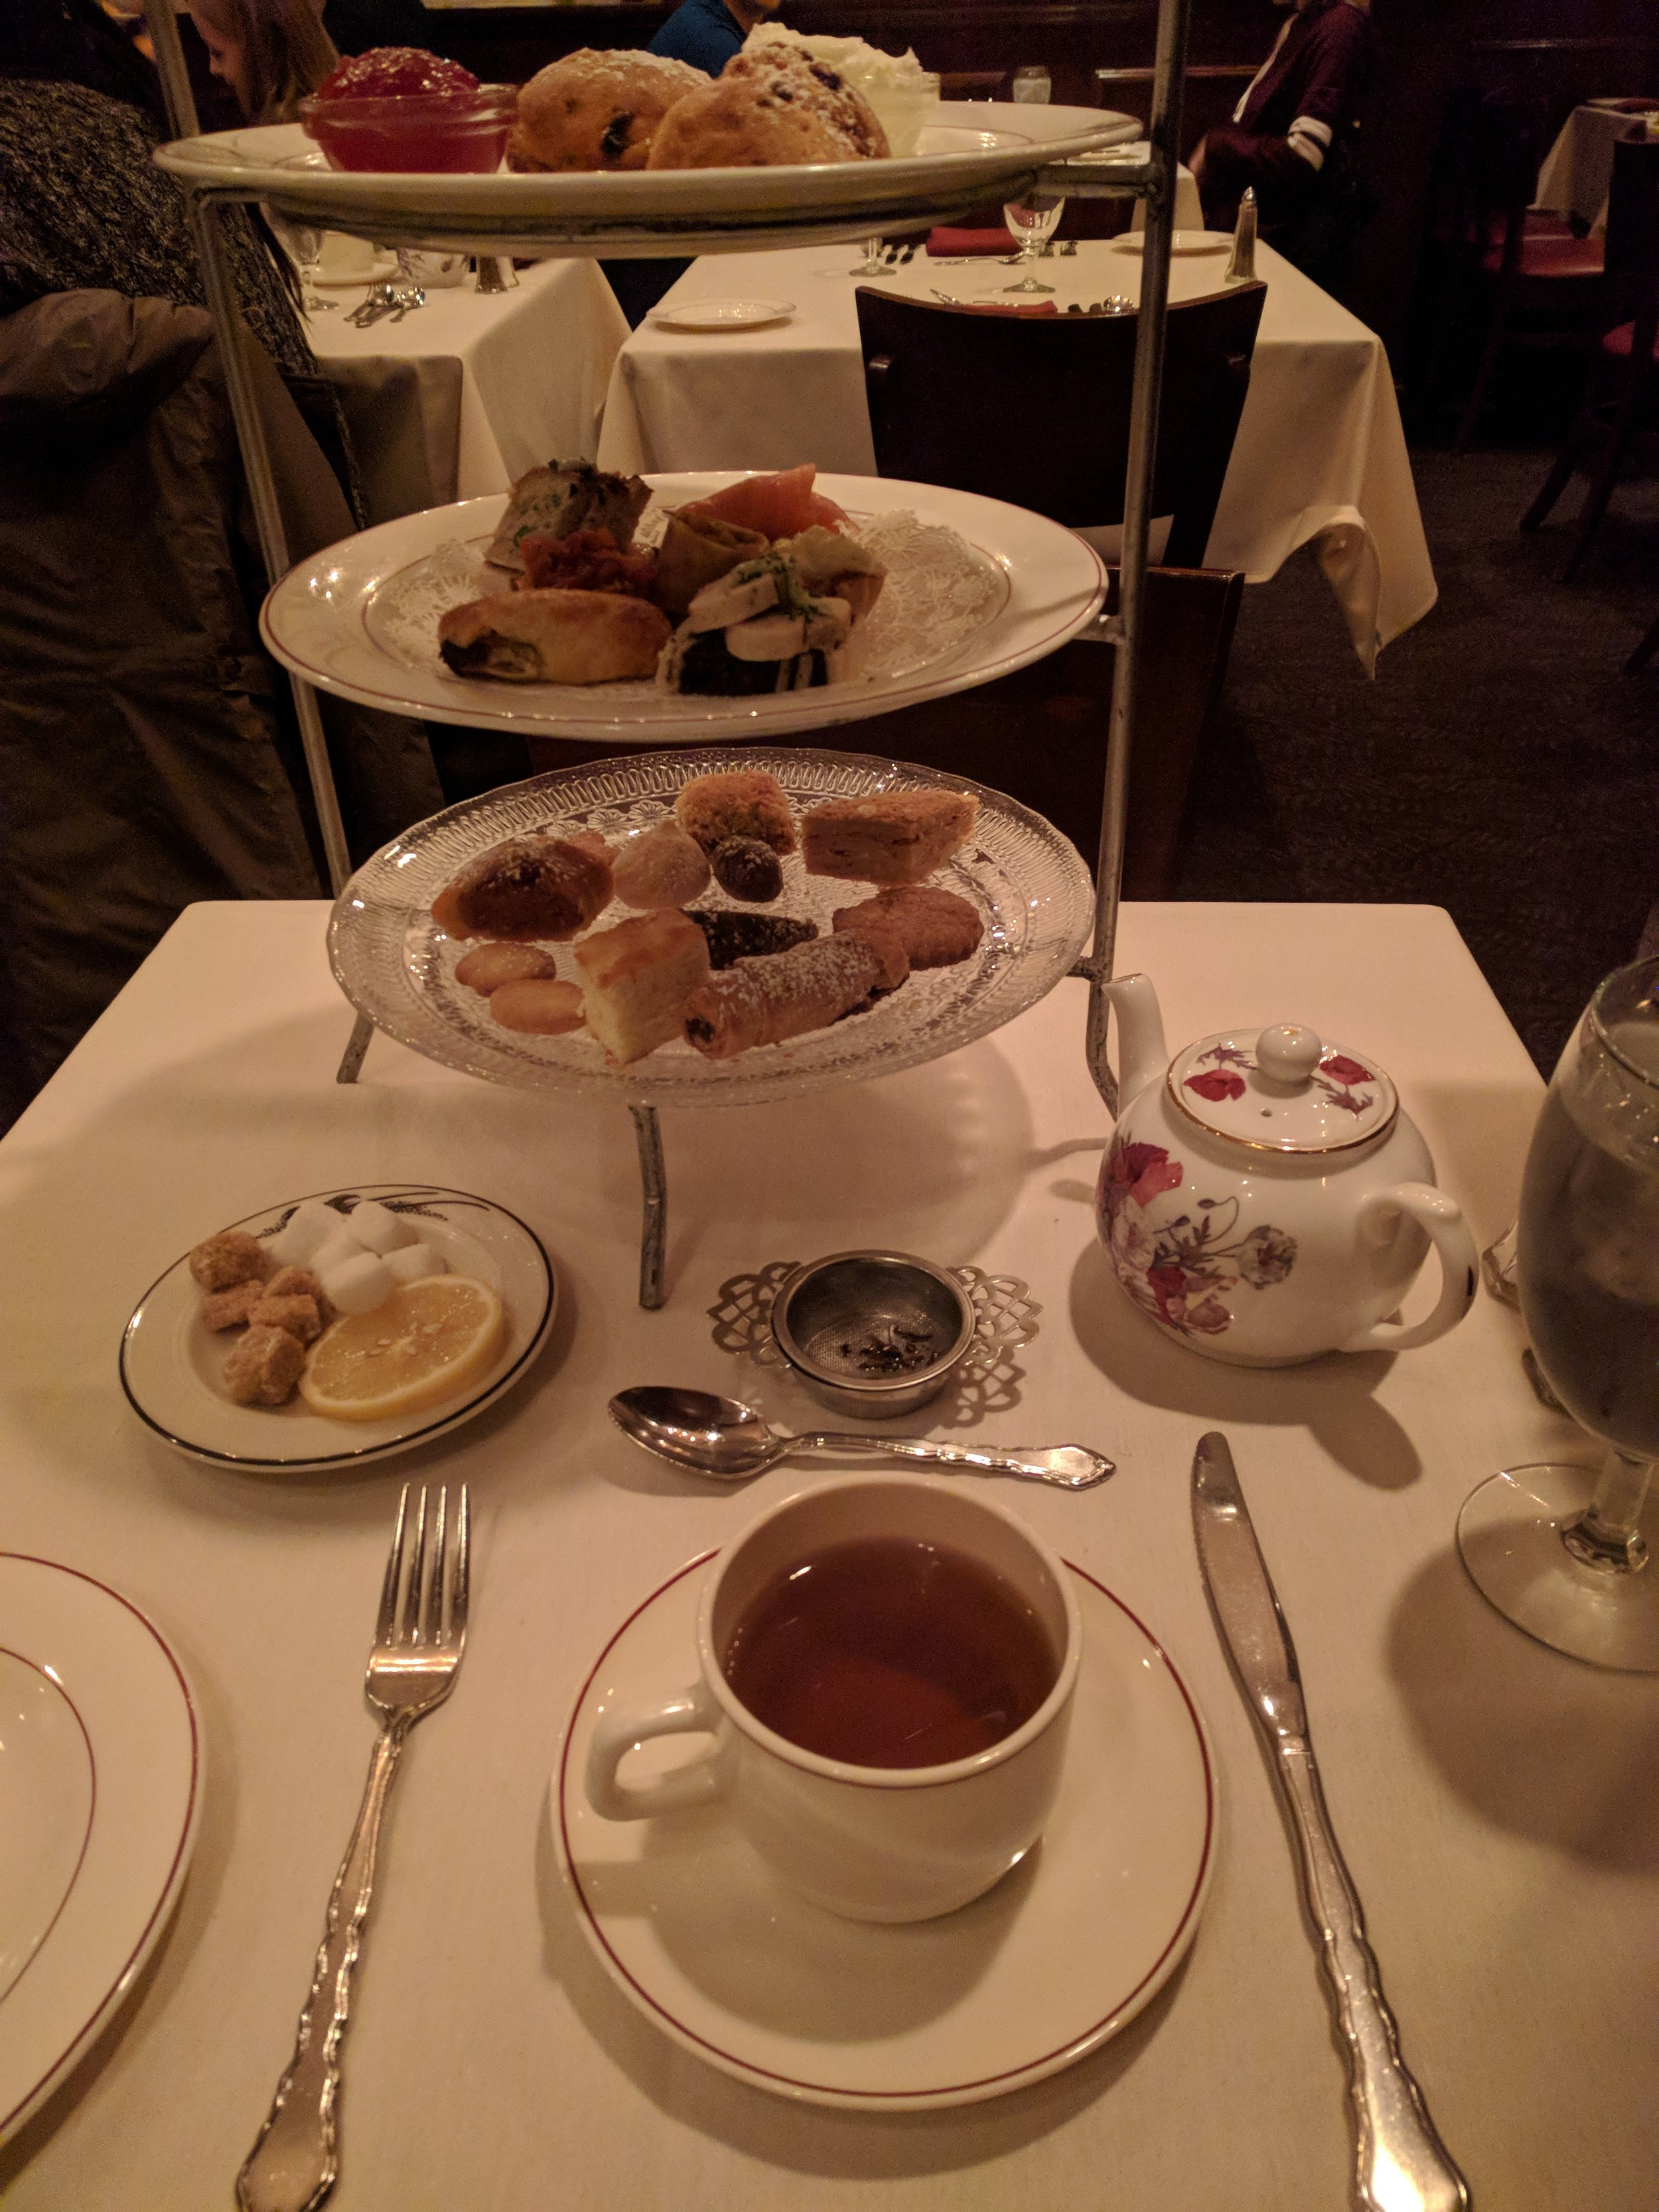 Full Afternoon Tea Service at Russian Tea Time.